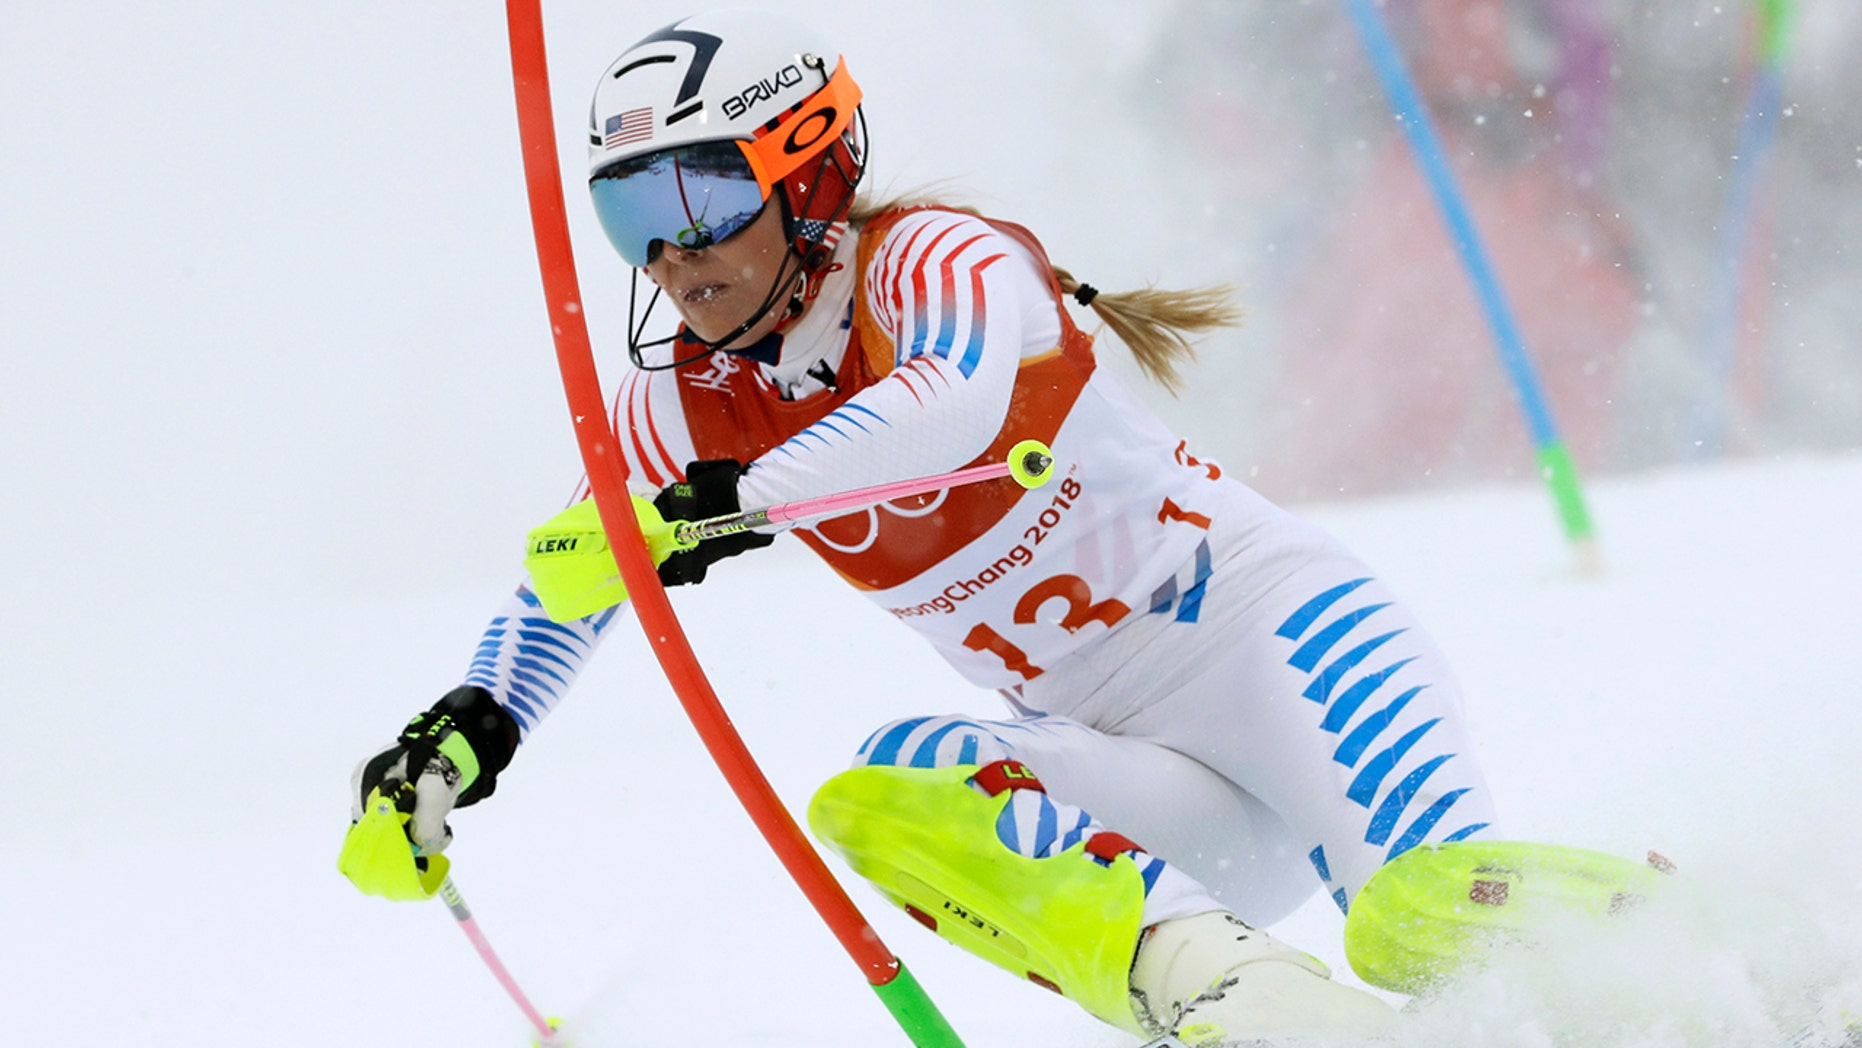 FILE - In this Thursday, Feb. 22, 2018 file photo, Lindsey Vonn competes in the women's combined slalom at the 2018 Winter Olympics in Jeongseon, South Korea. Retirement hasn't slowed down Lindsey Vonn. (AP Photo/Luca Bruno, File)